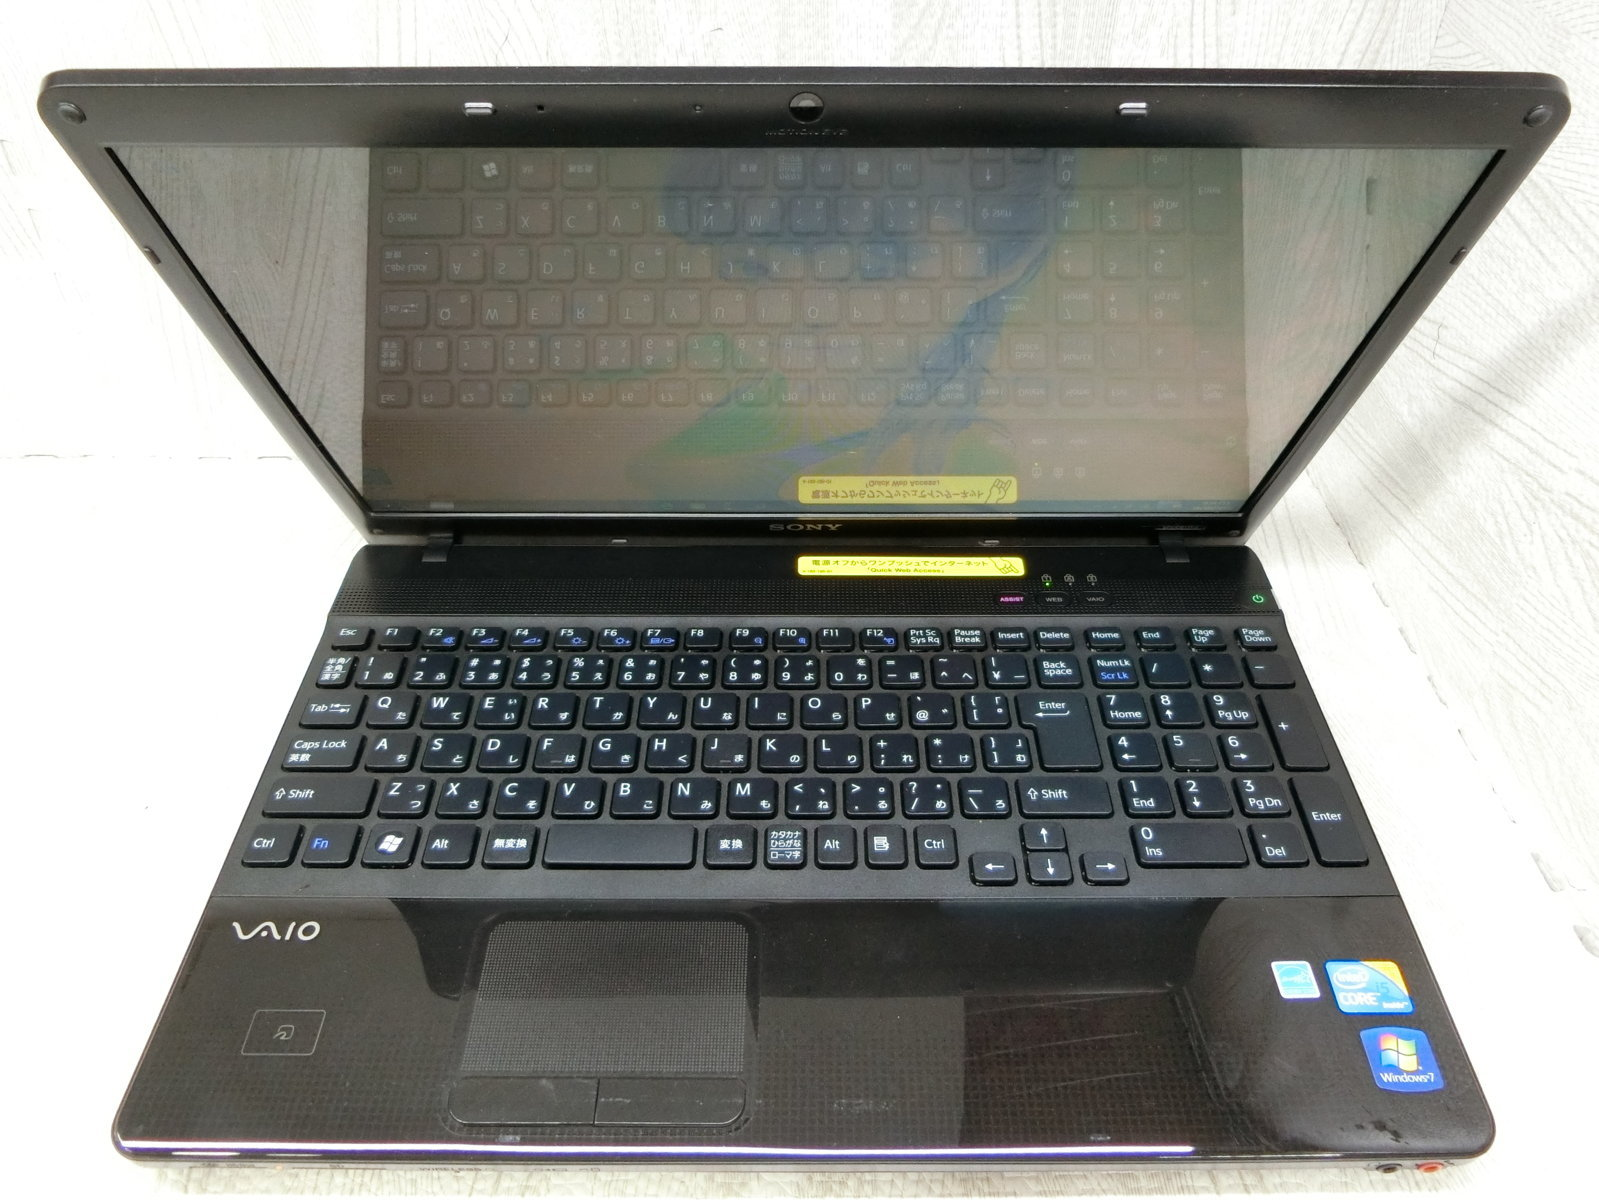 "SONY Vaio 71311N 15.6"" Core i5 / M520 / 2.40GHz  / 4G / SSD 128G. MS:T0606 7791"